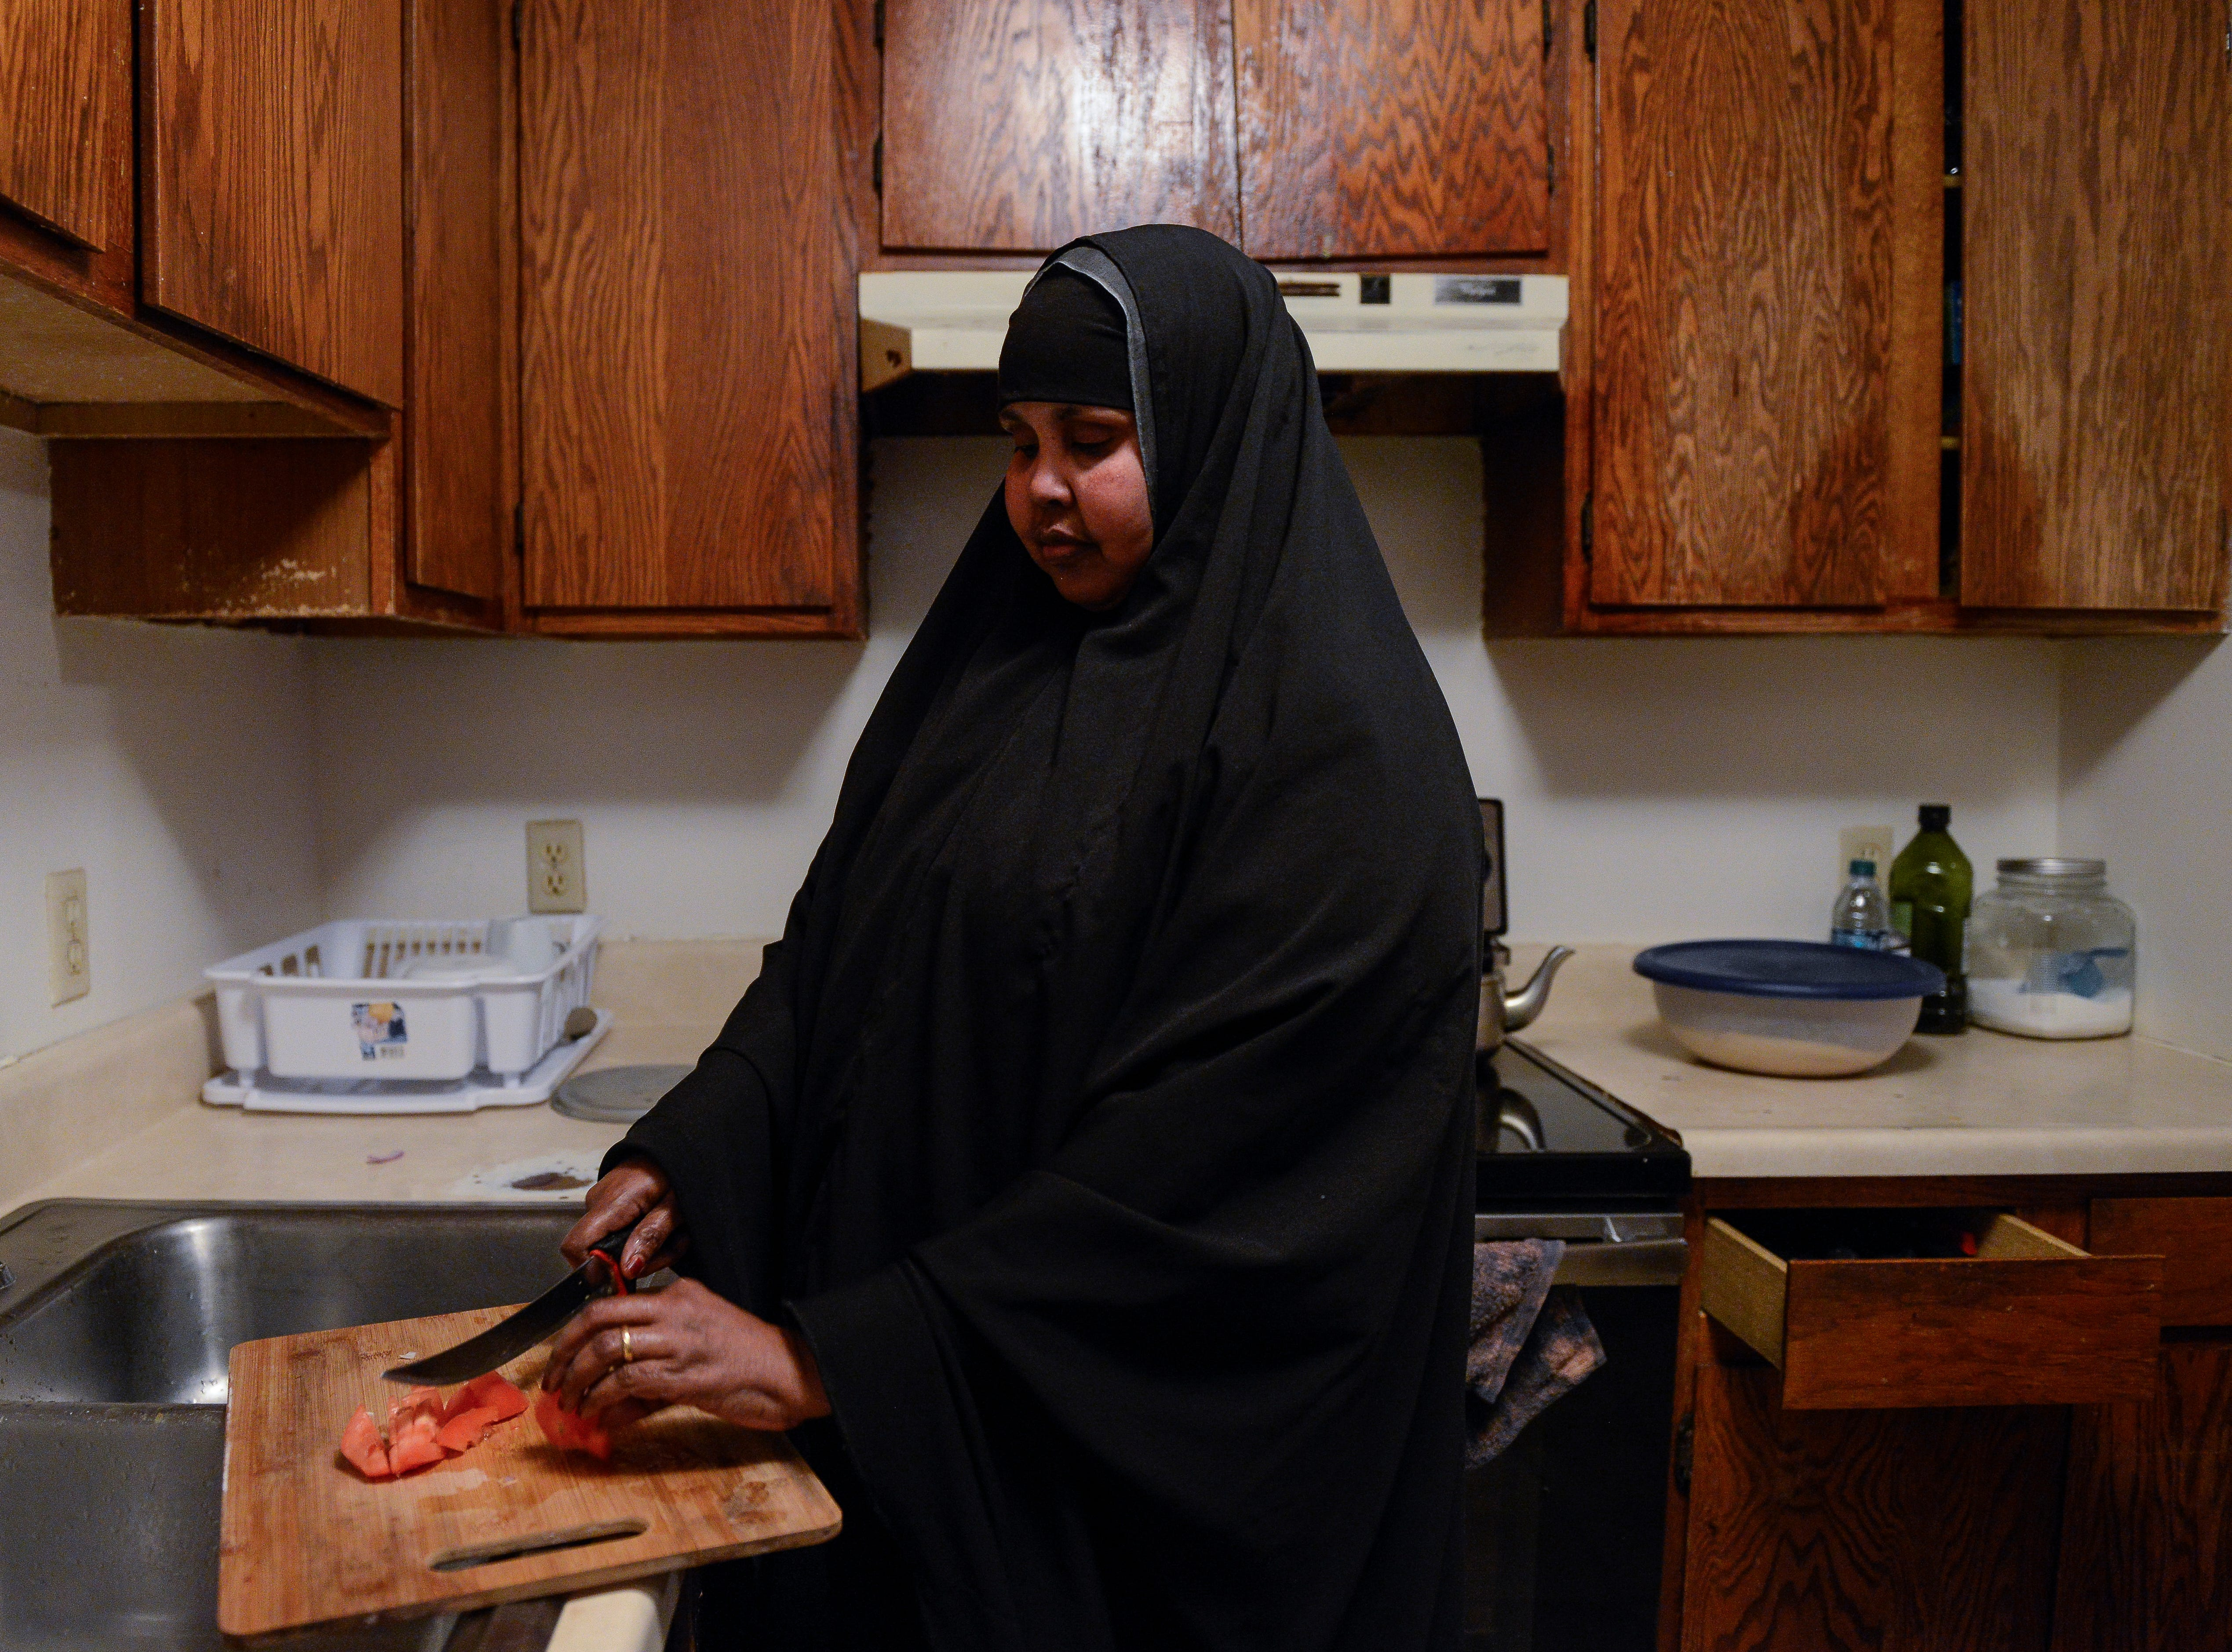 Deeja Mubafak, who moved to Garden City from Somalia in 2006, makes breakfast in her apartment before heading to her job at the Tyson Fresh Meats meatpacking plant on Wednesday, Jan. 23, 2019.